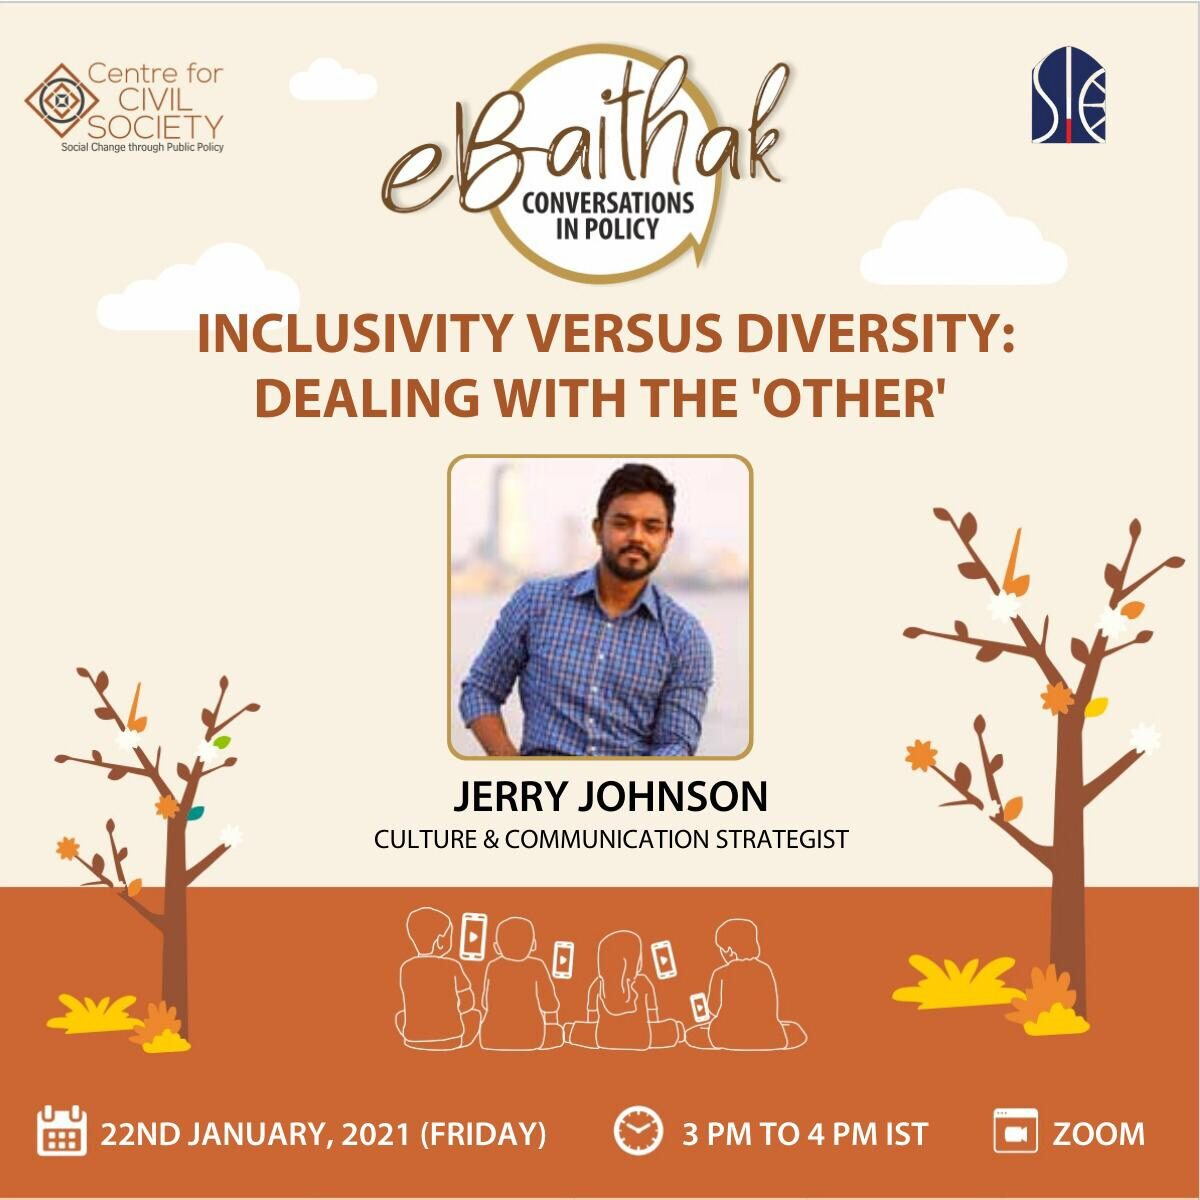 eBaithak: Conversations in Policy with Jerry Johnson on 22nd January 2021 (in collaboration with SIC)